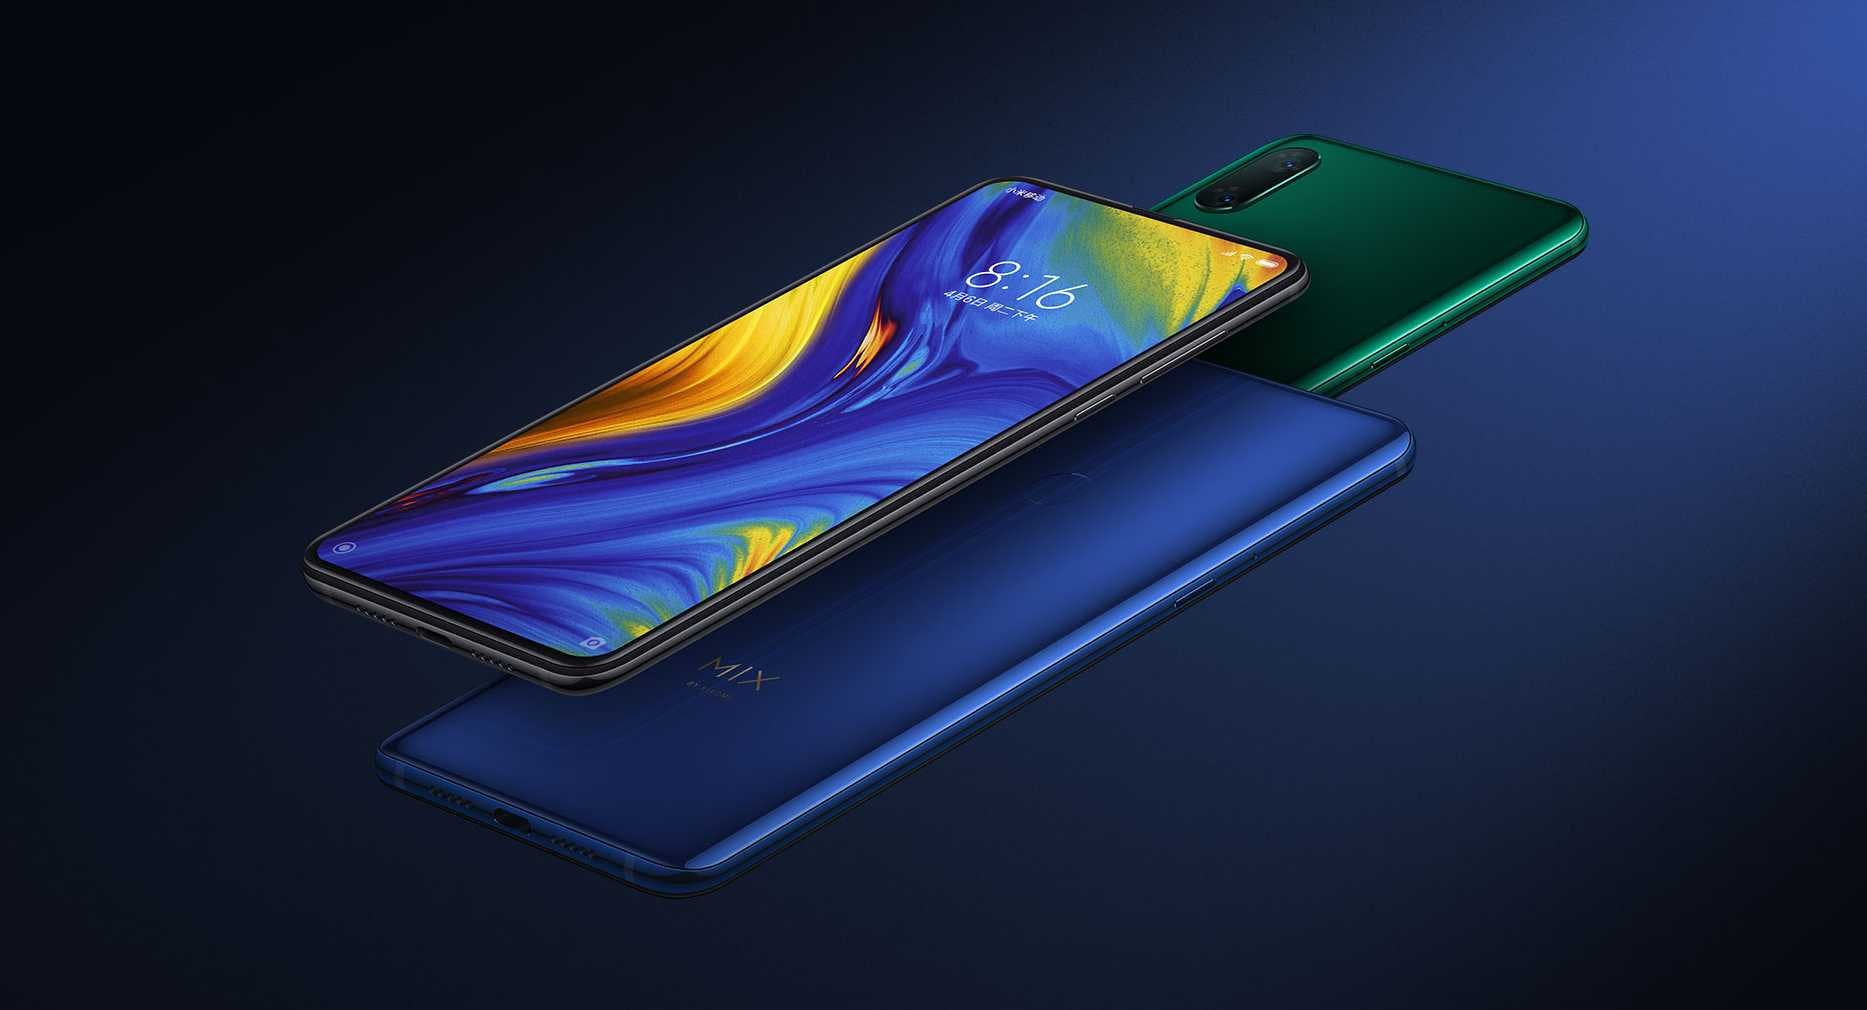 Could The Xiaomi Mi Mix 3 5G Be The Most Accessible 5G Handset Yet?